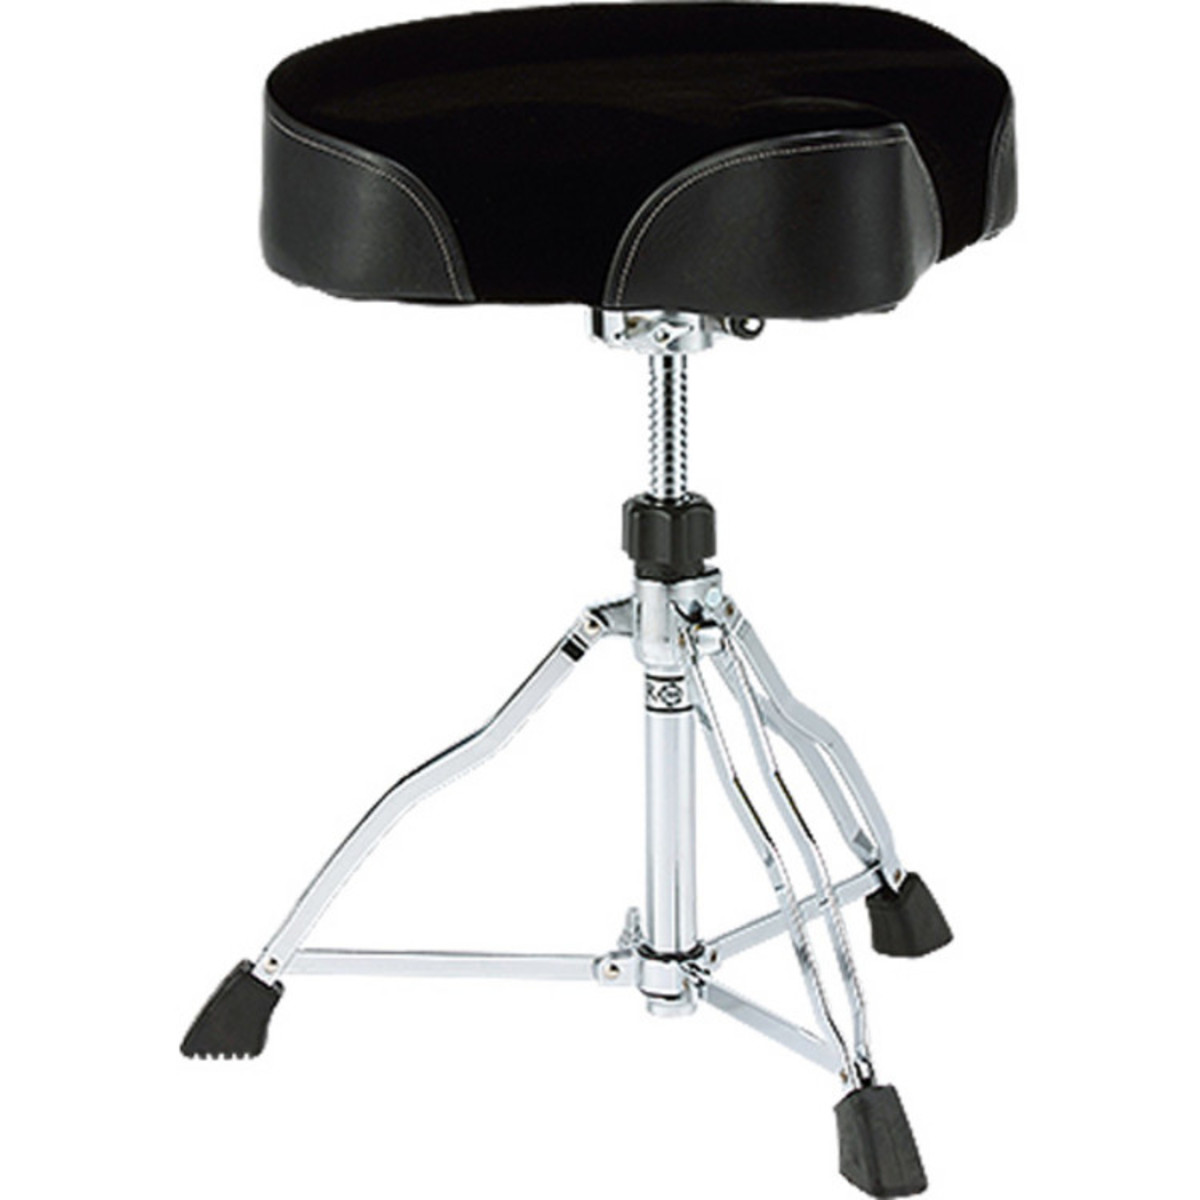 Disc Tama Ht530c First Chair Wide Rider Cloth Top Drum